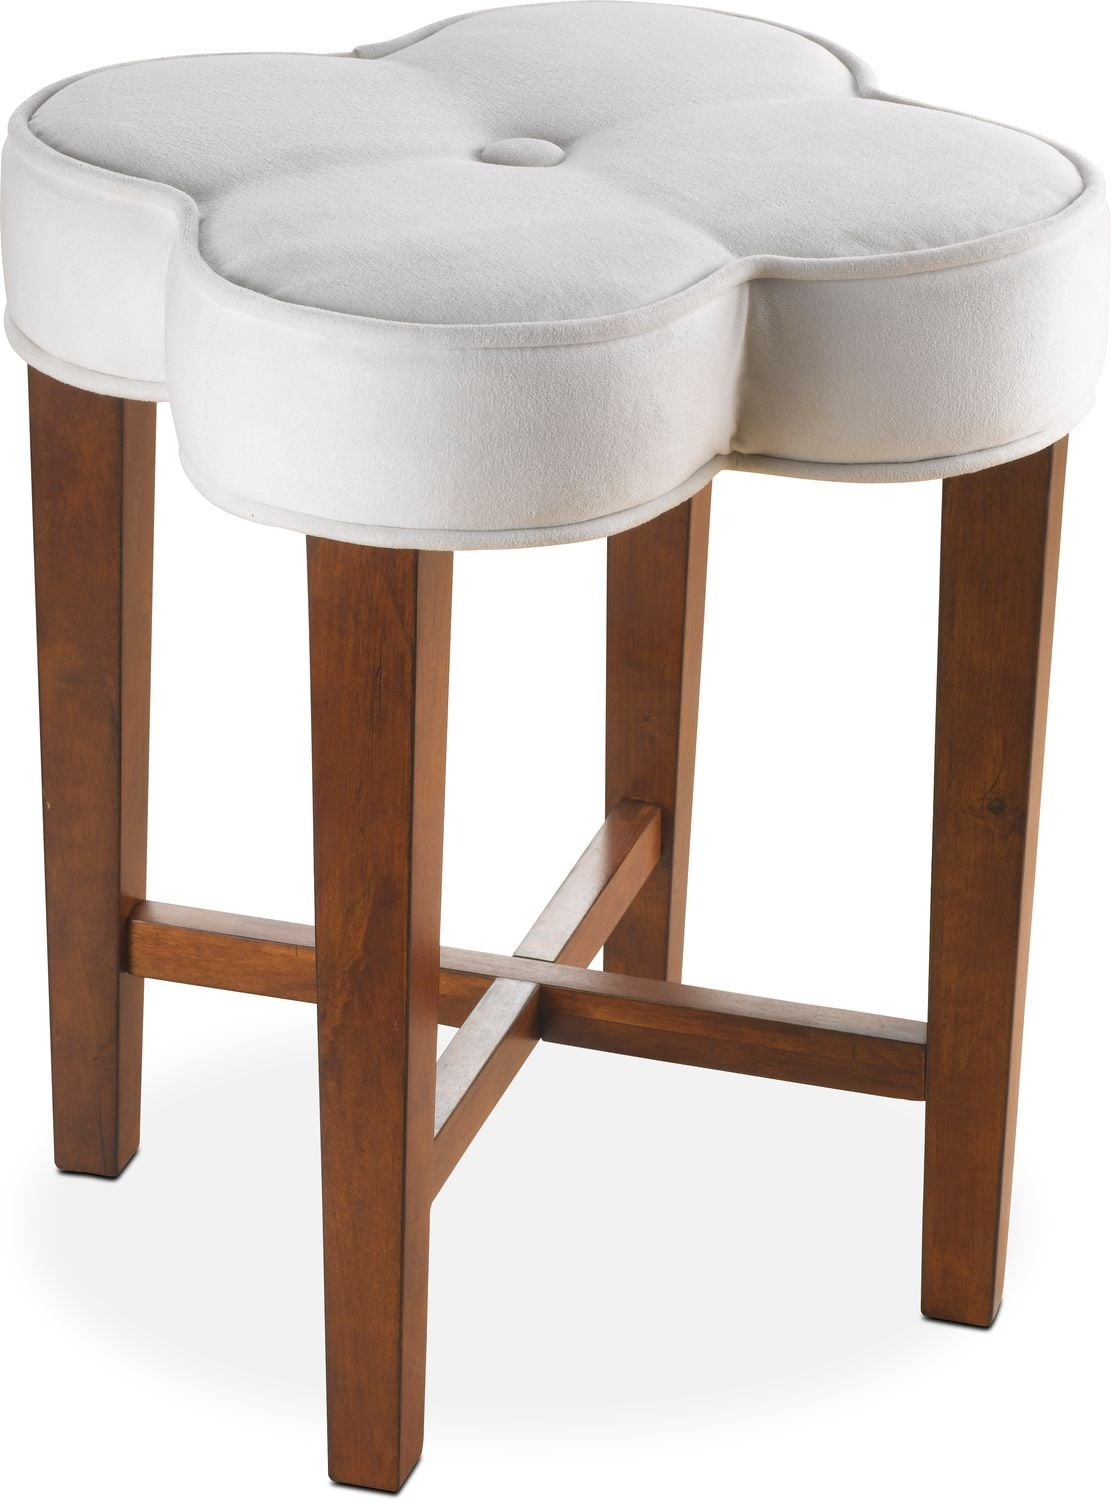 Quad Vanity Stool   White